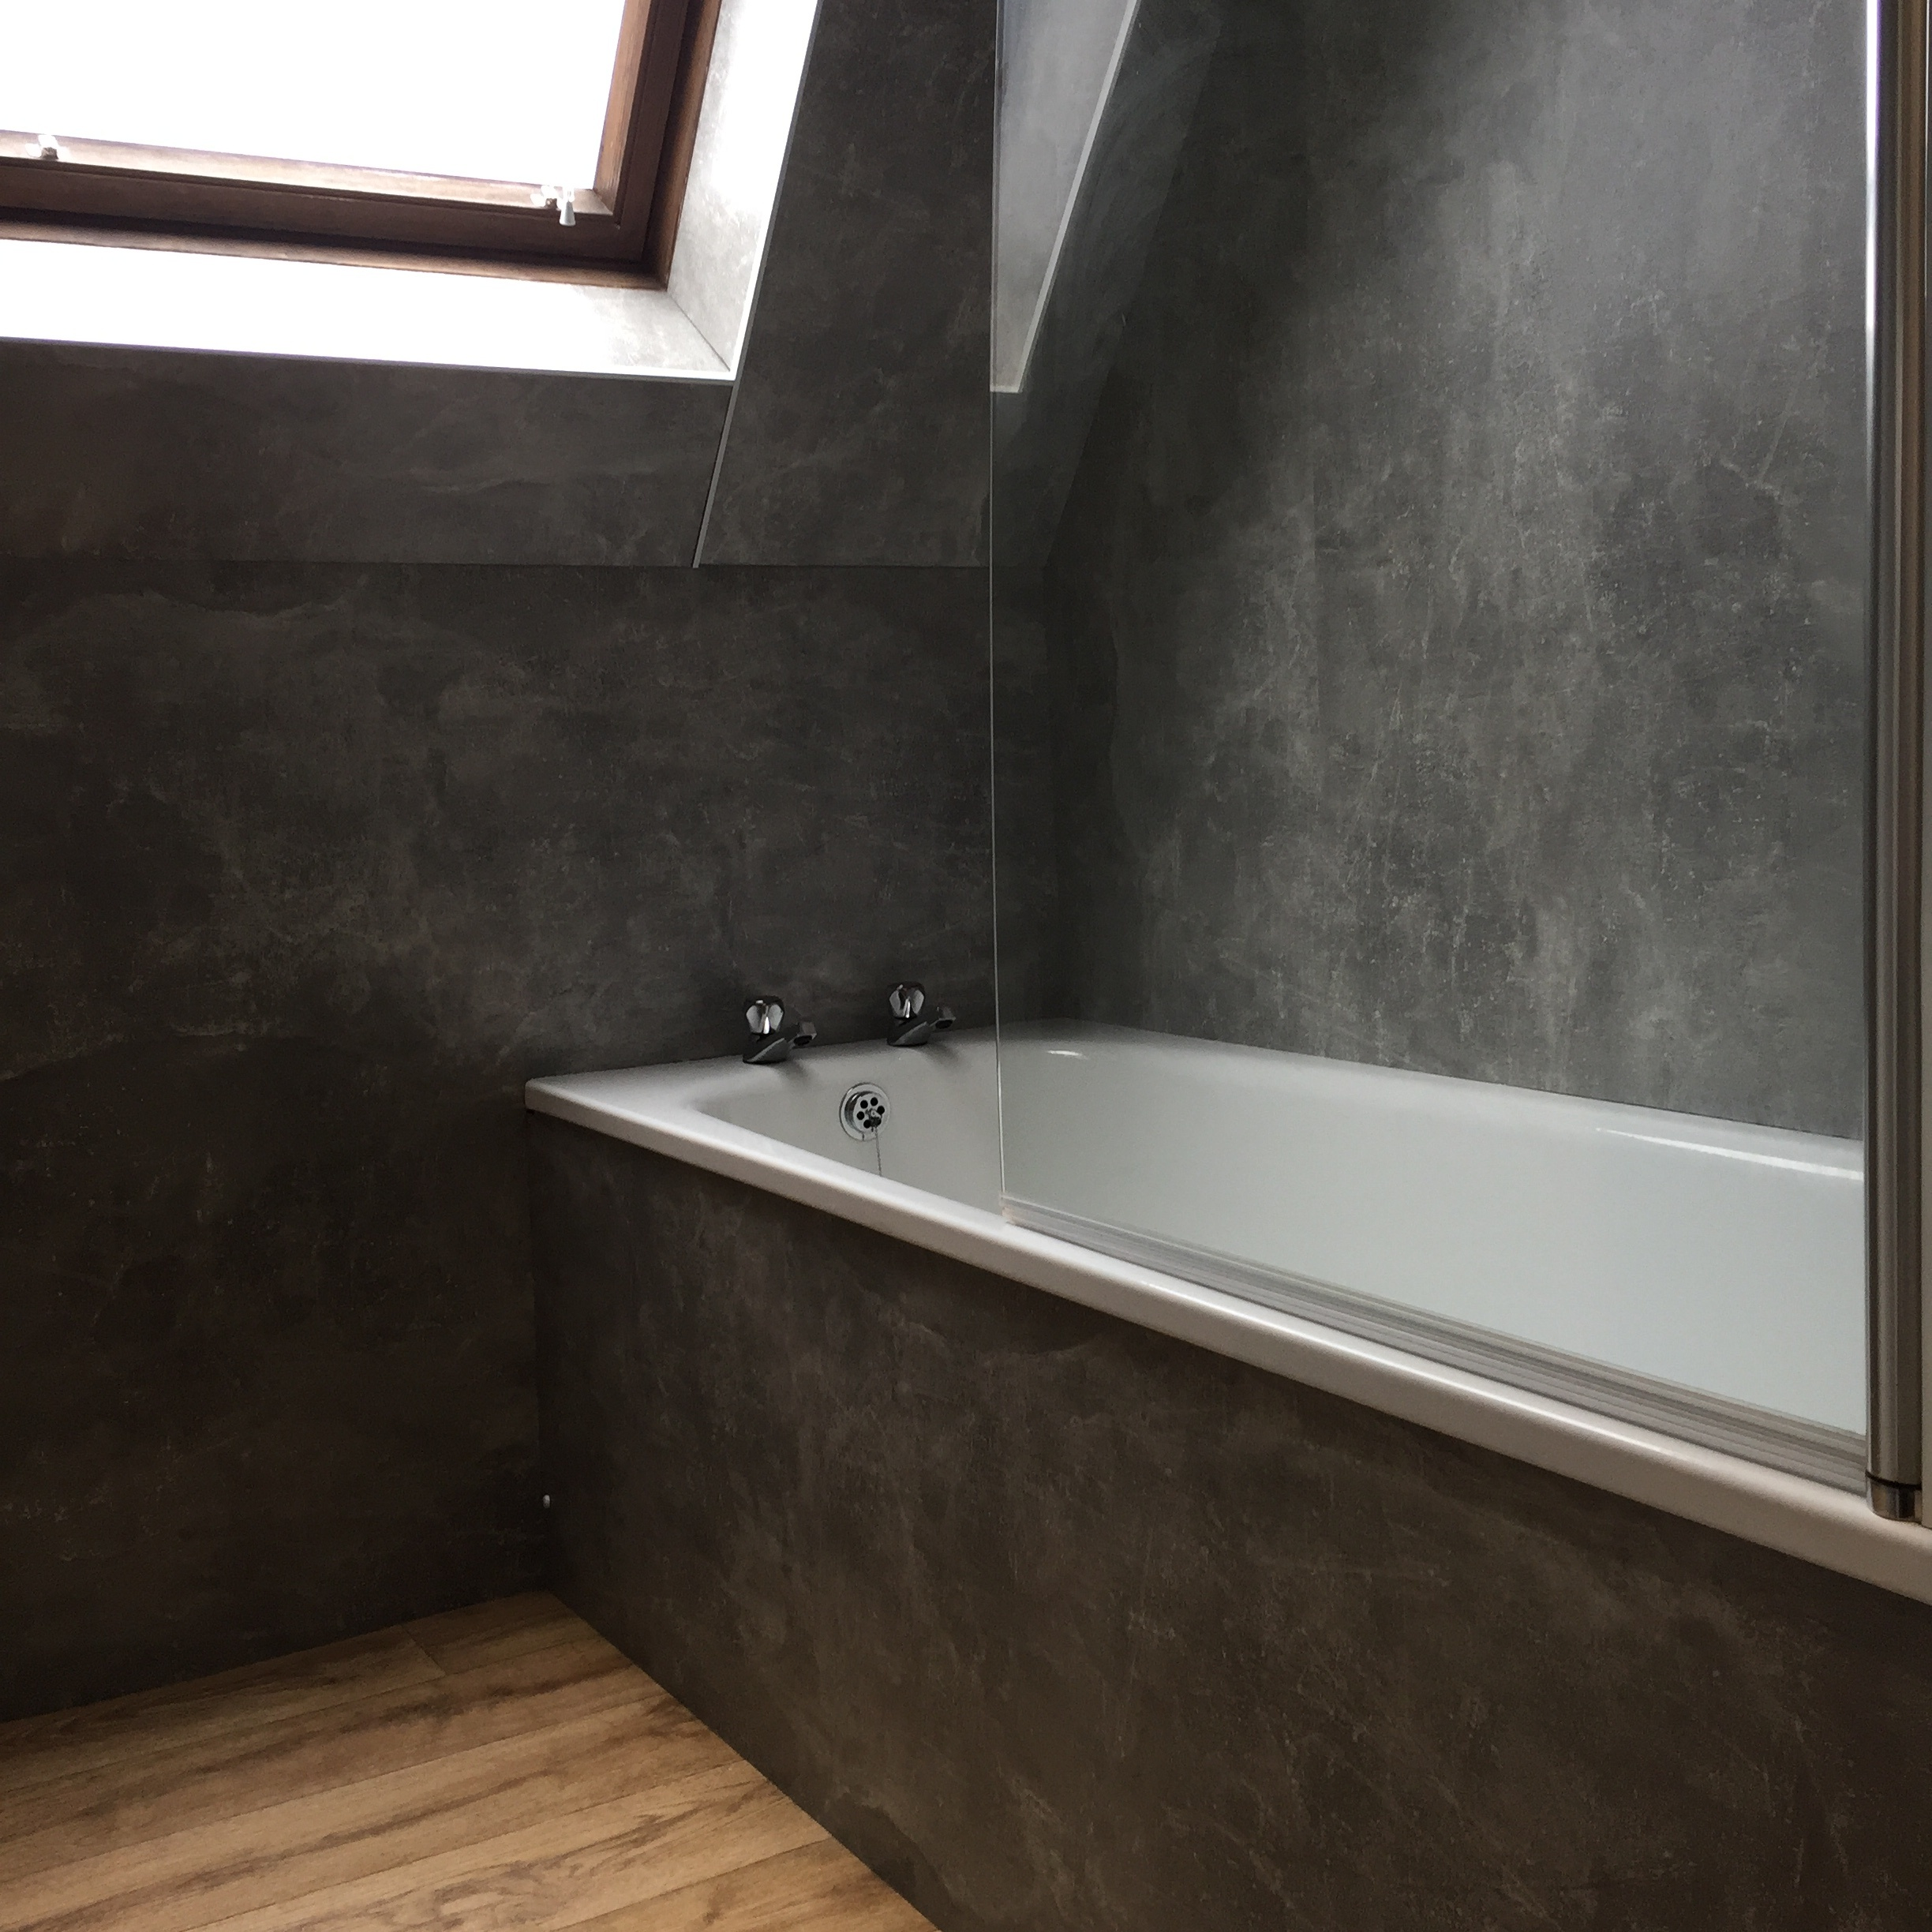 Bathroom with electric shower over the bath